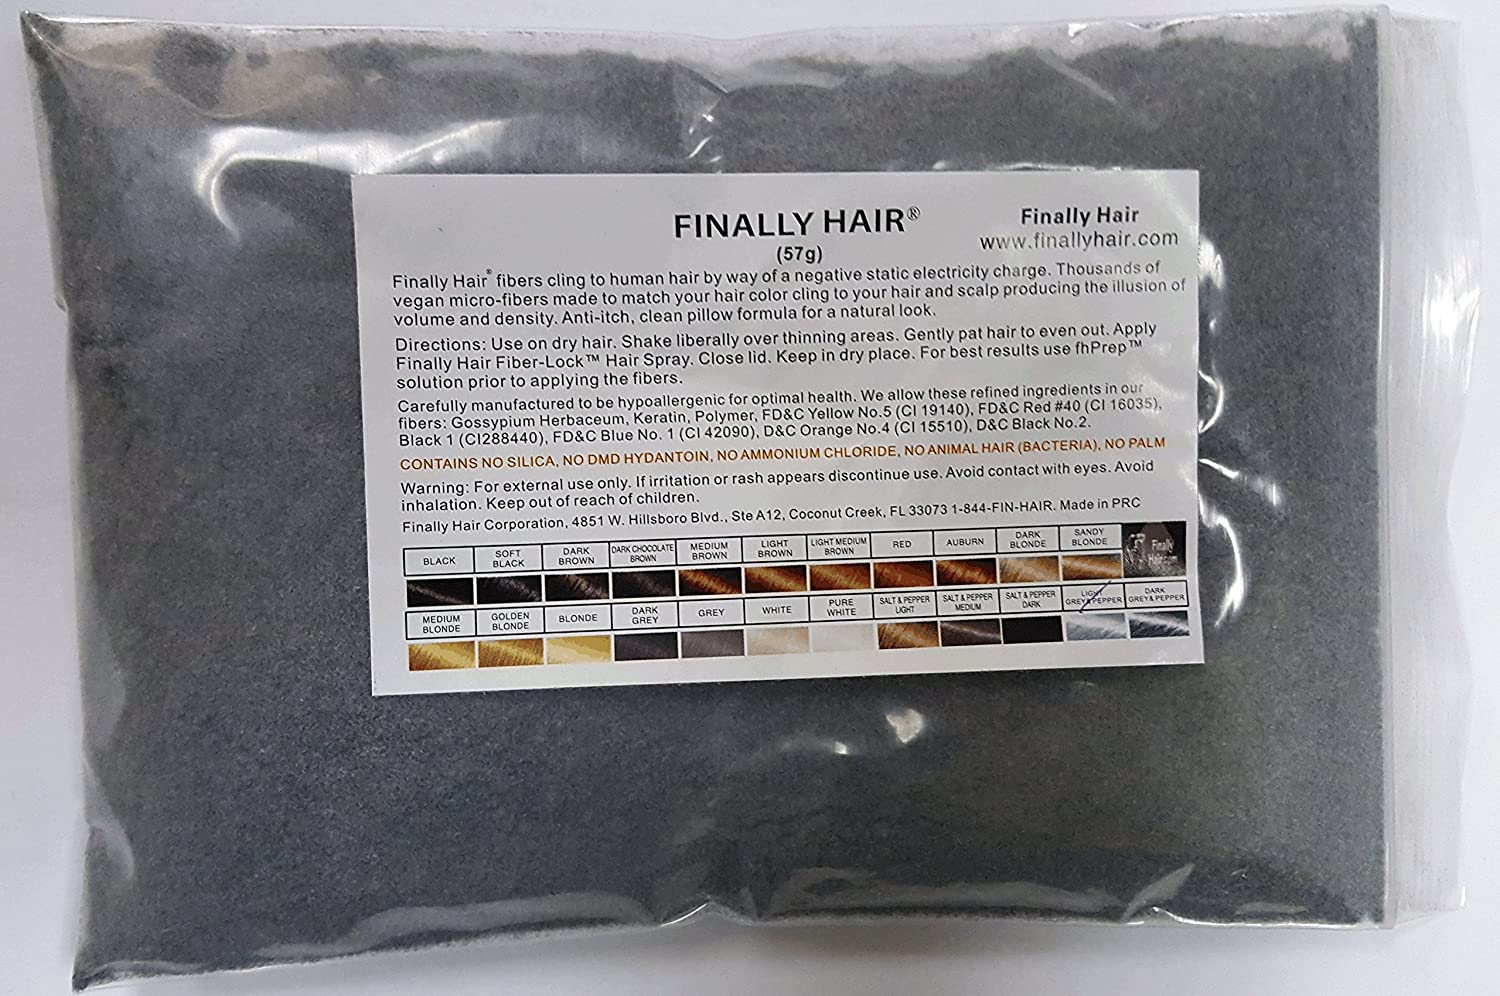 Hair Building Fibers Black Refill 50 Gram Refill - Refill Your Existing Fiber Bottle - Hair Filler Fibers - Cover Grey Roots Concealer by Finally Hair (50g 50gr 50gram 50 G Gr Gram Black) Finally Hair Corporation